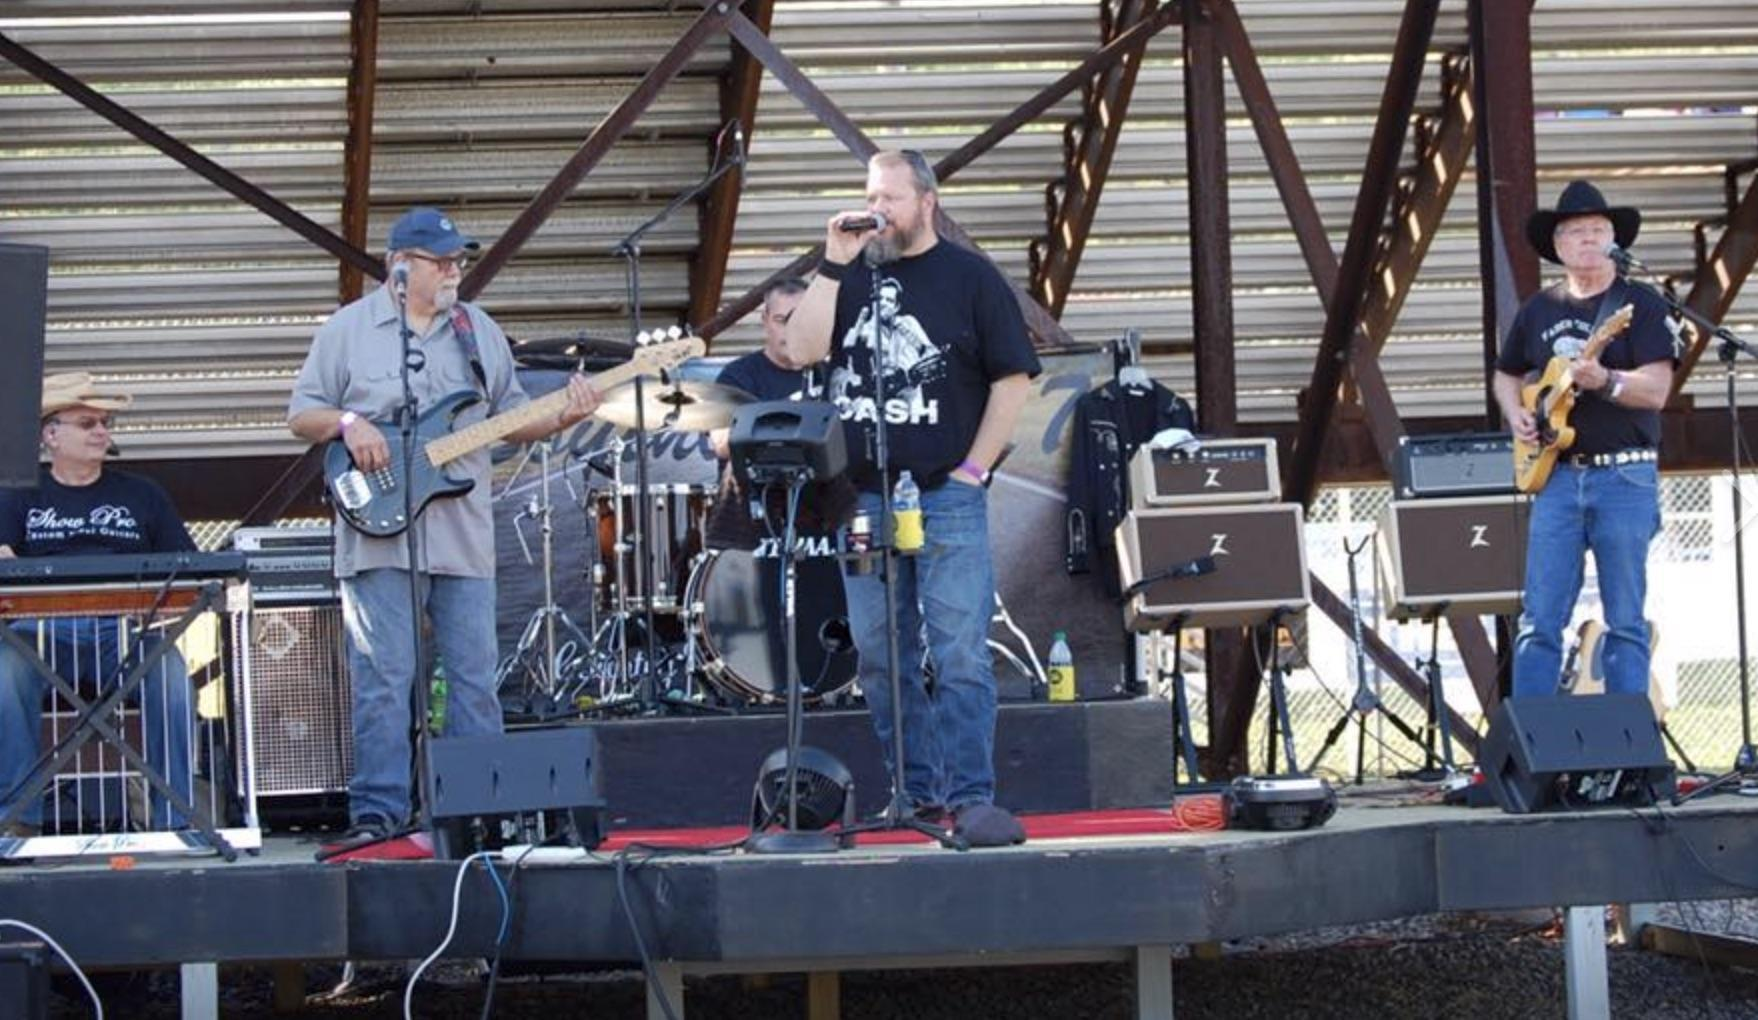 williamsburg virginia live local music southbound 17 country music live on stage